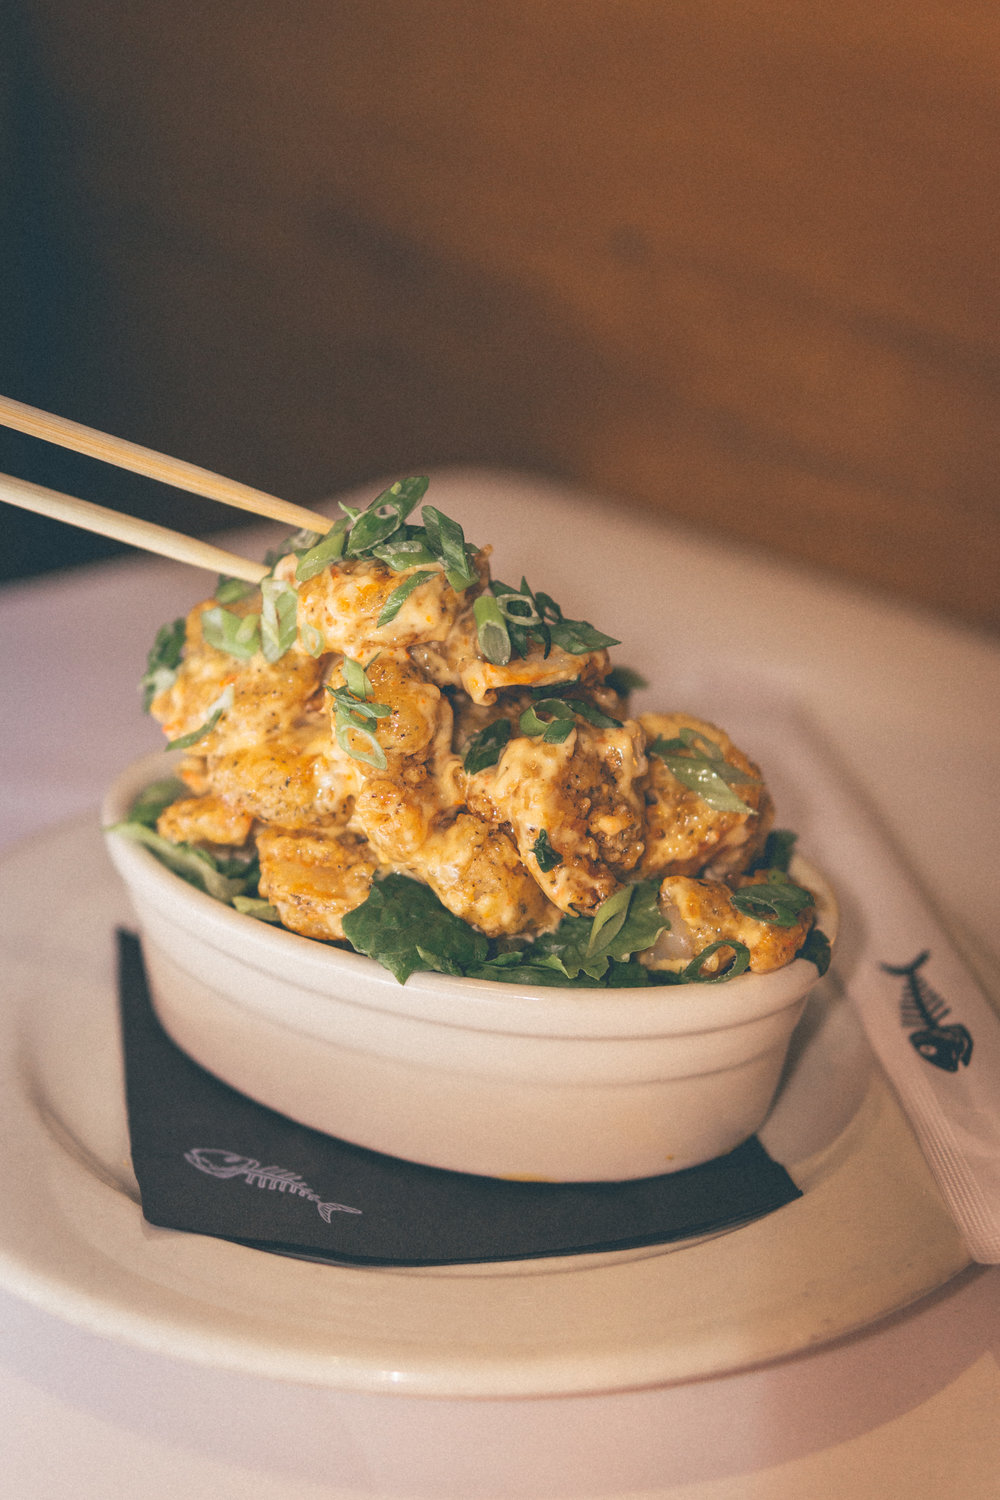 Bang Bang Shrimp: Crispy shrimp, tossed in a creamy, spicy Bang Bang sauce.